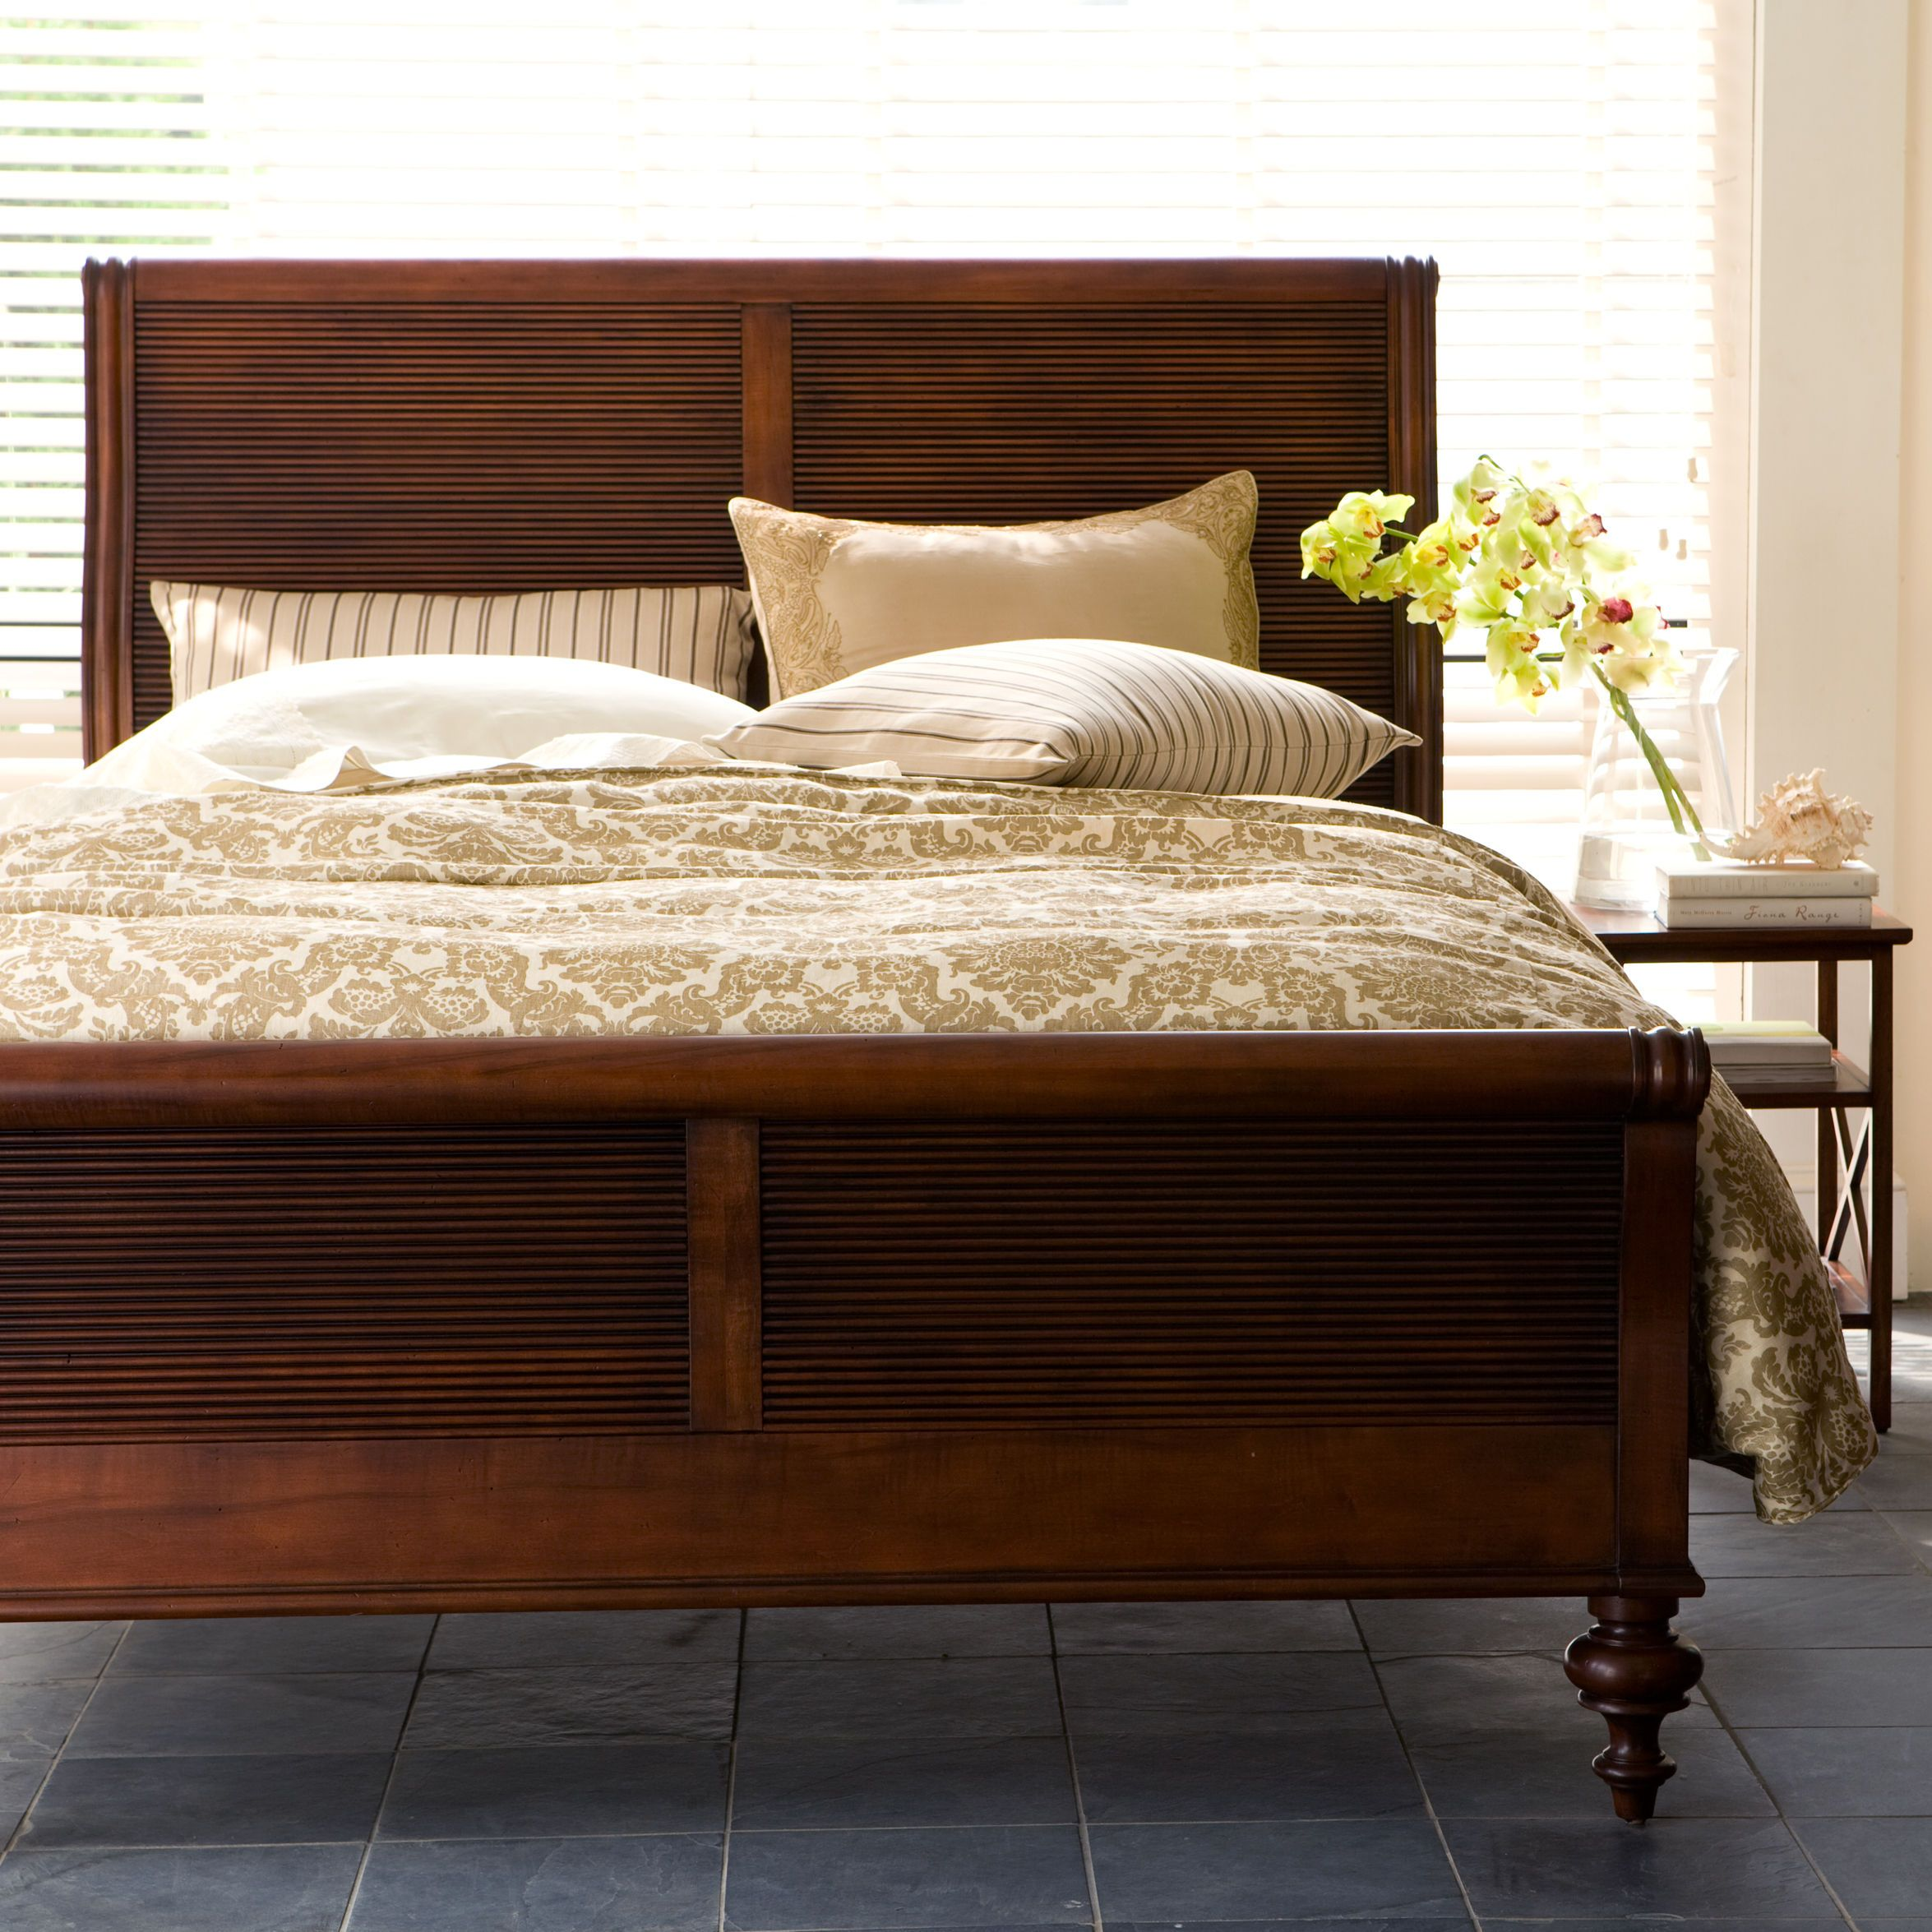 Kingston Bed Ethan Allen Us 1529 Multiple Finishes